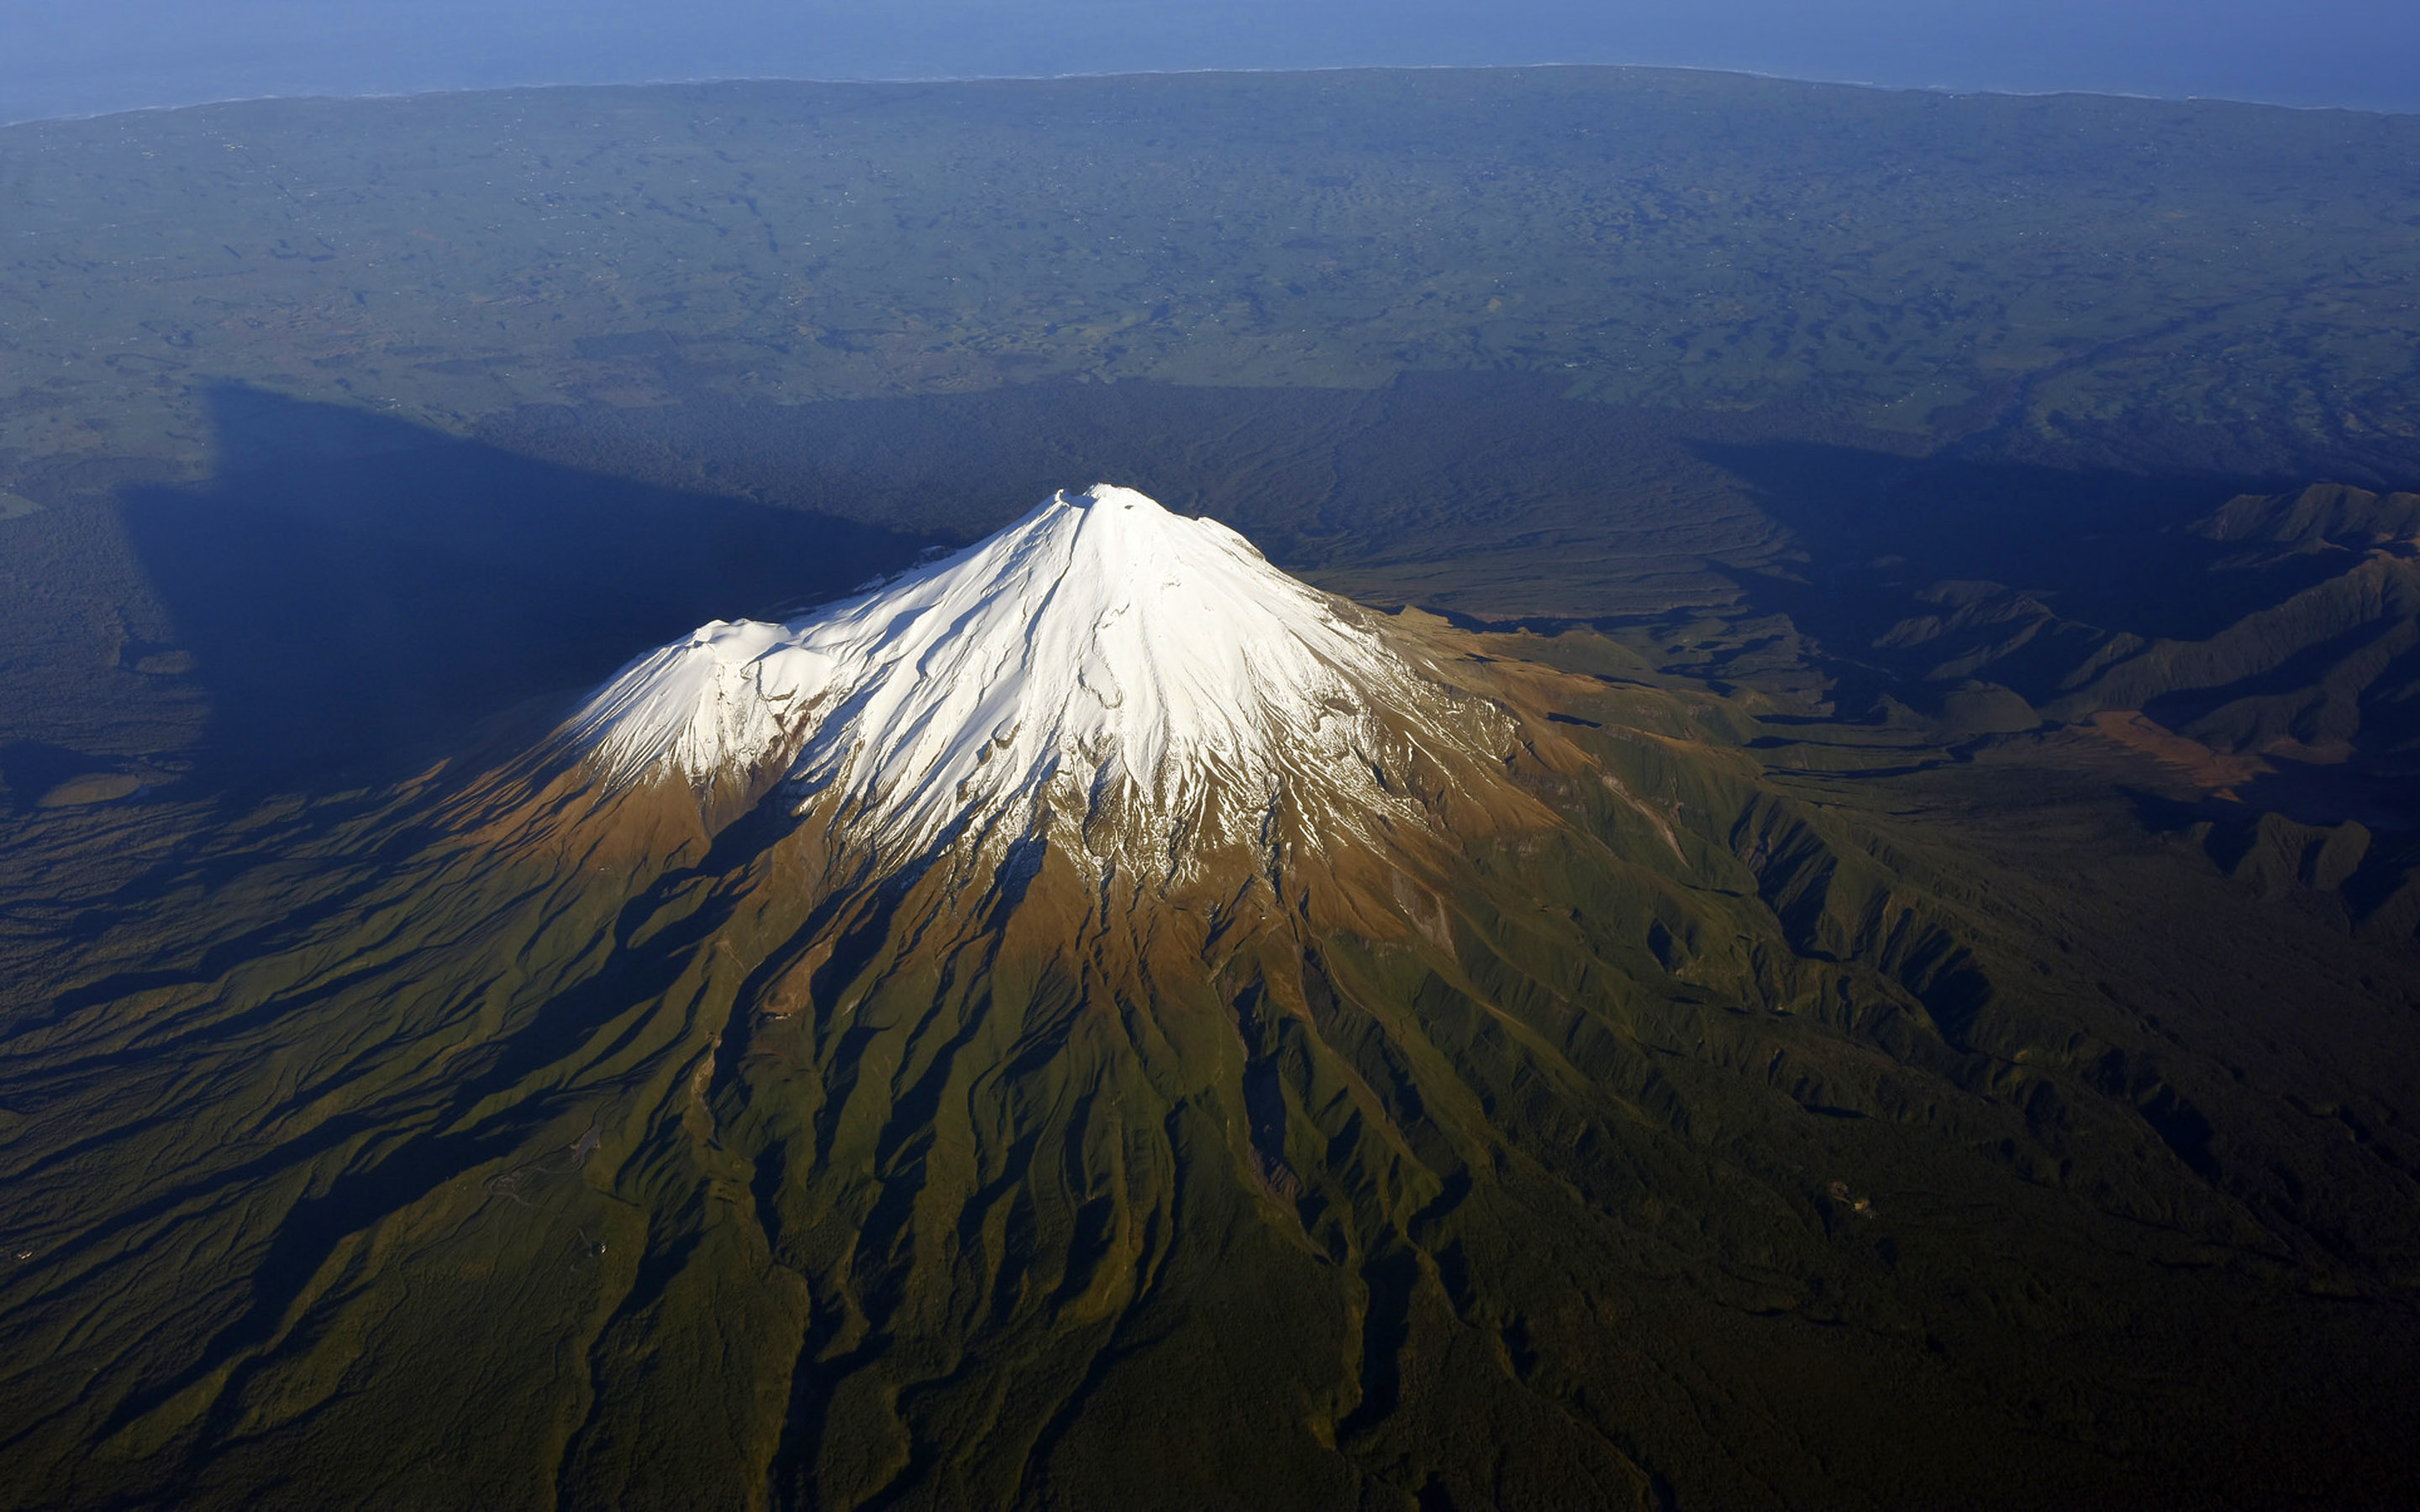 Batman Wallpaper Hd 1920x1080 Geographic Mount Taranaki The Shadow Speaks New Zealand